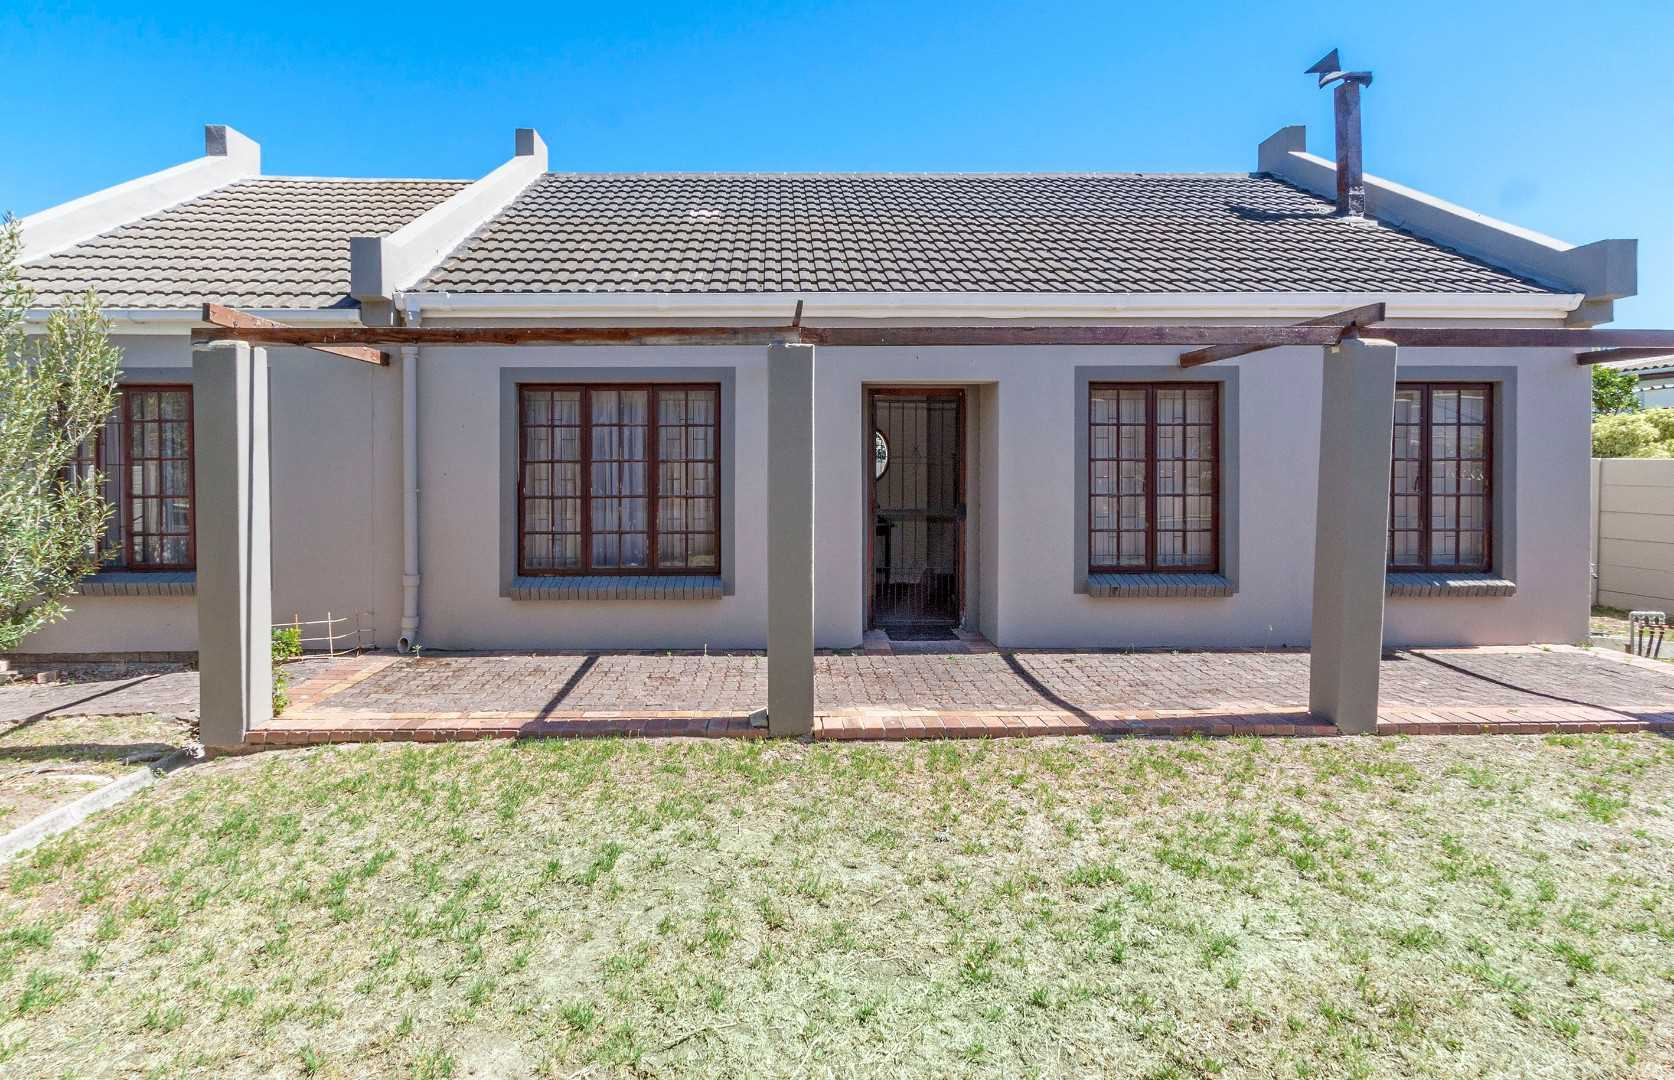 Character-filled 3 Bedroom Home in Popular Gordon's Bay Area